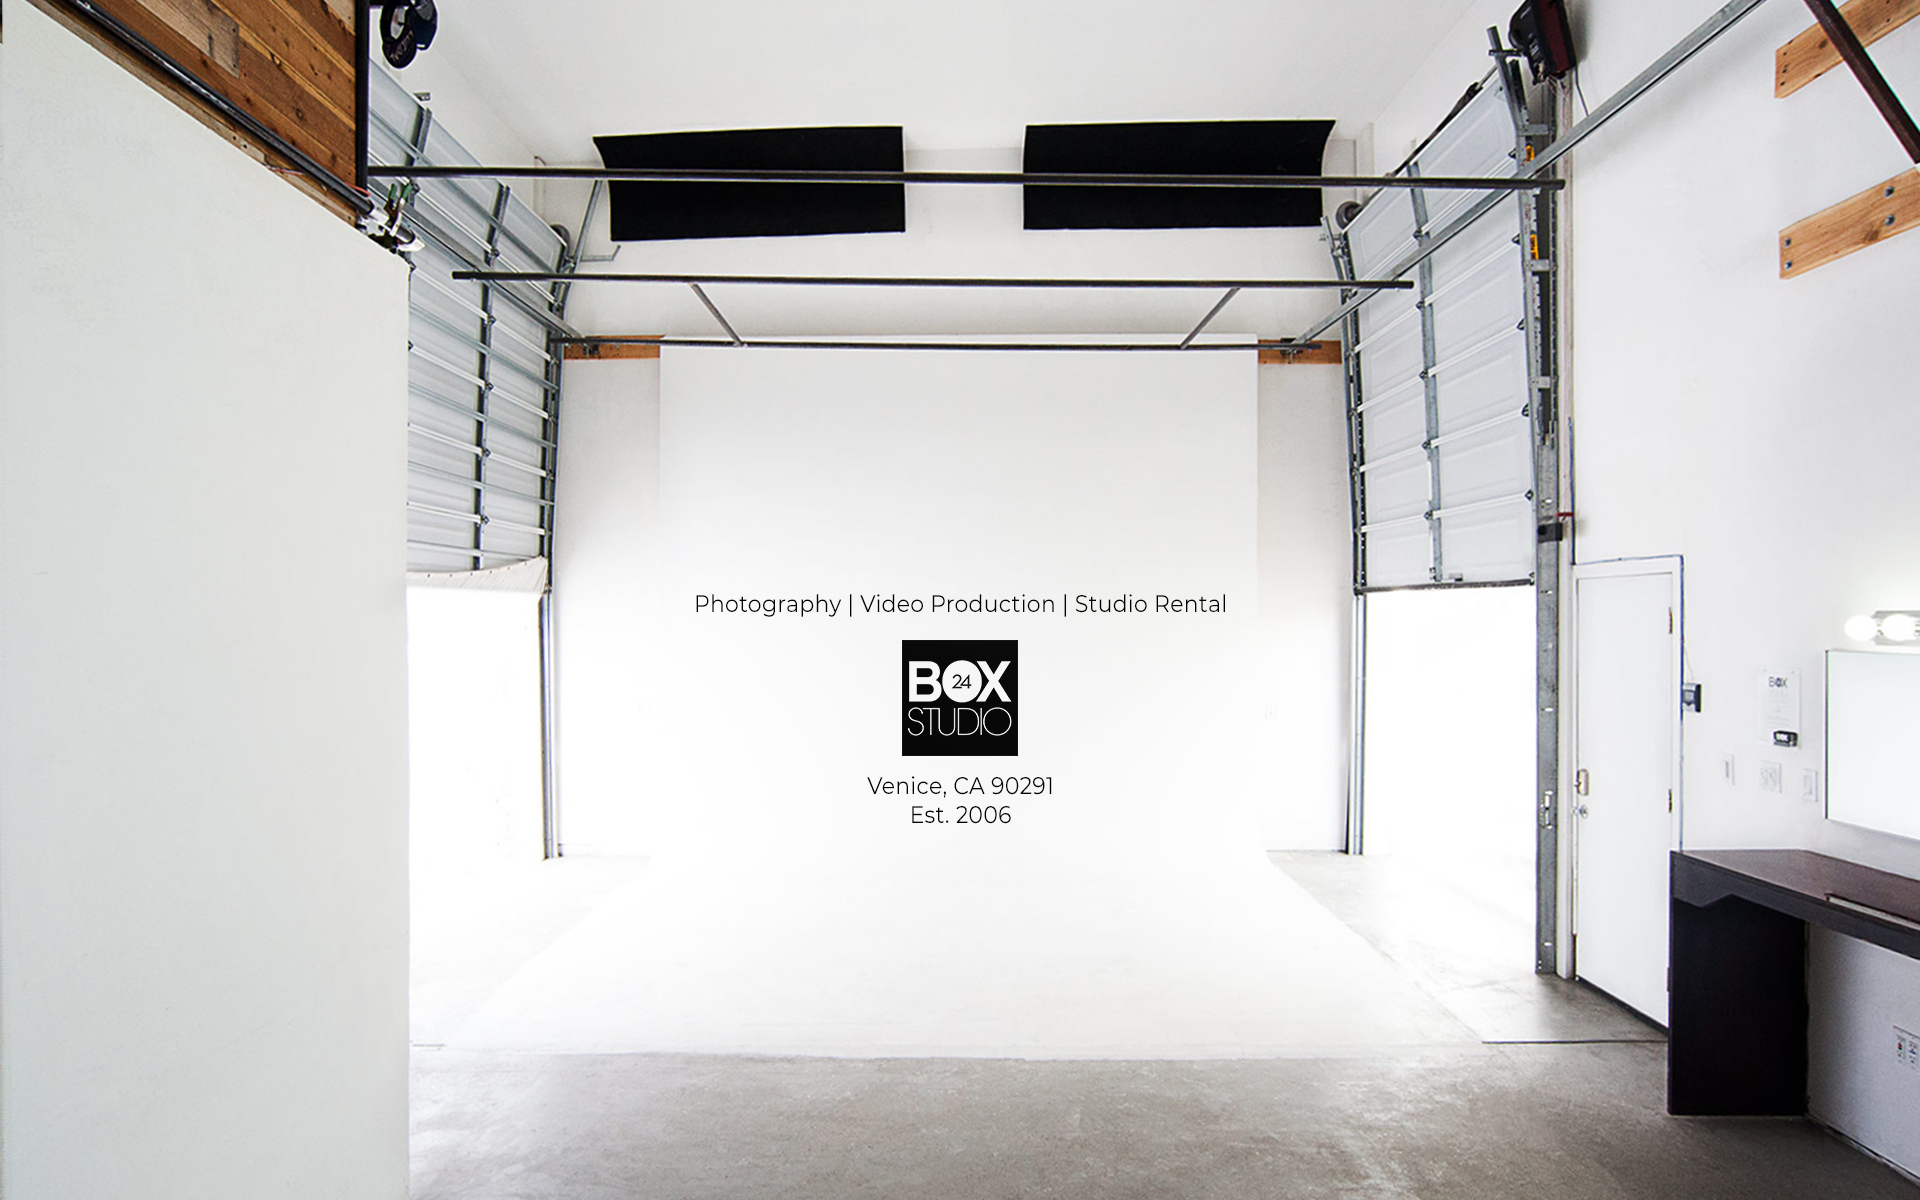 Photography_Video Production_Studio Rental